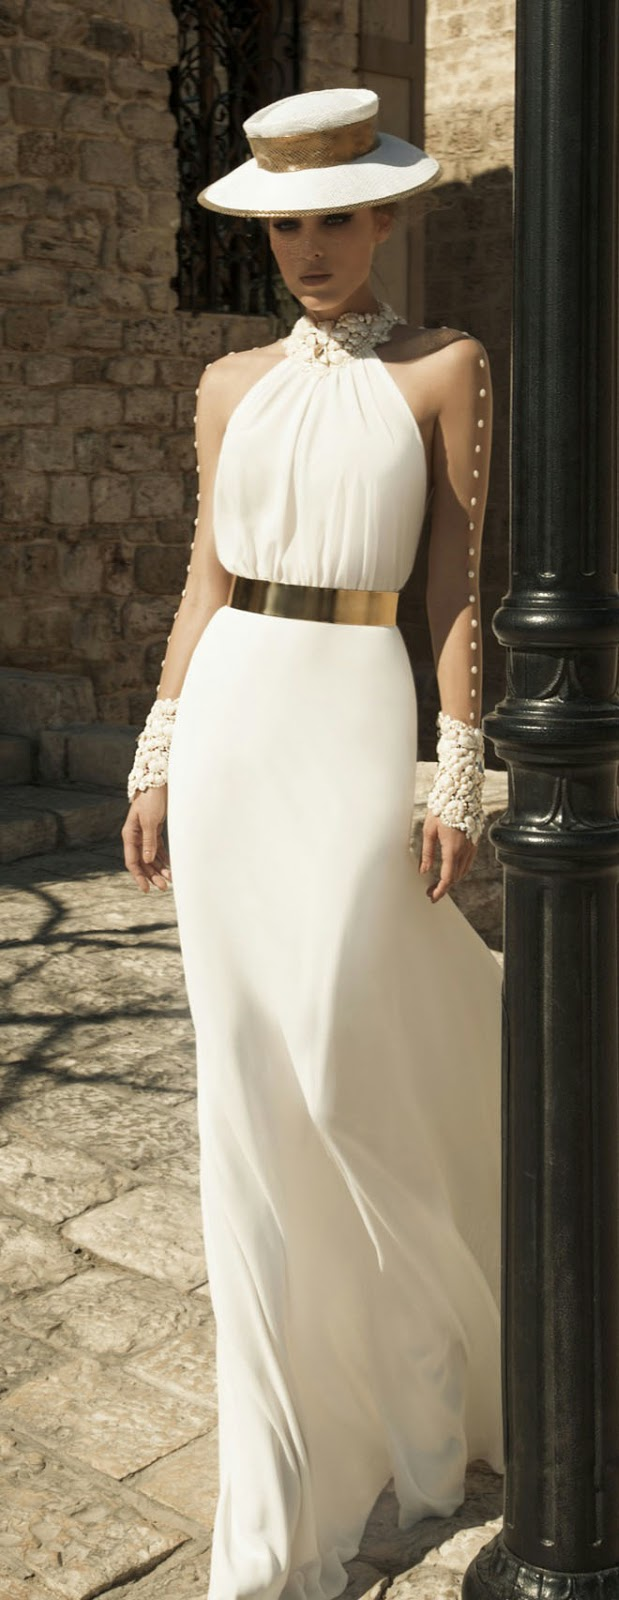 Best Wedding Dresses of 2014 - Galia Lahav